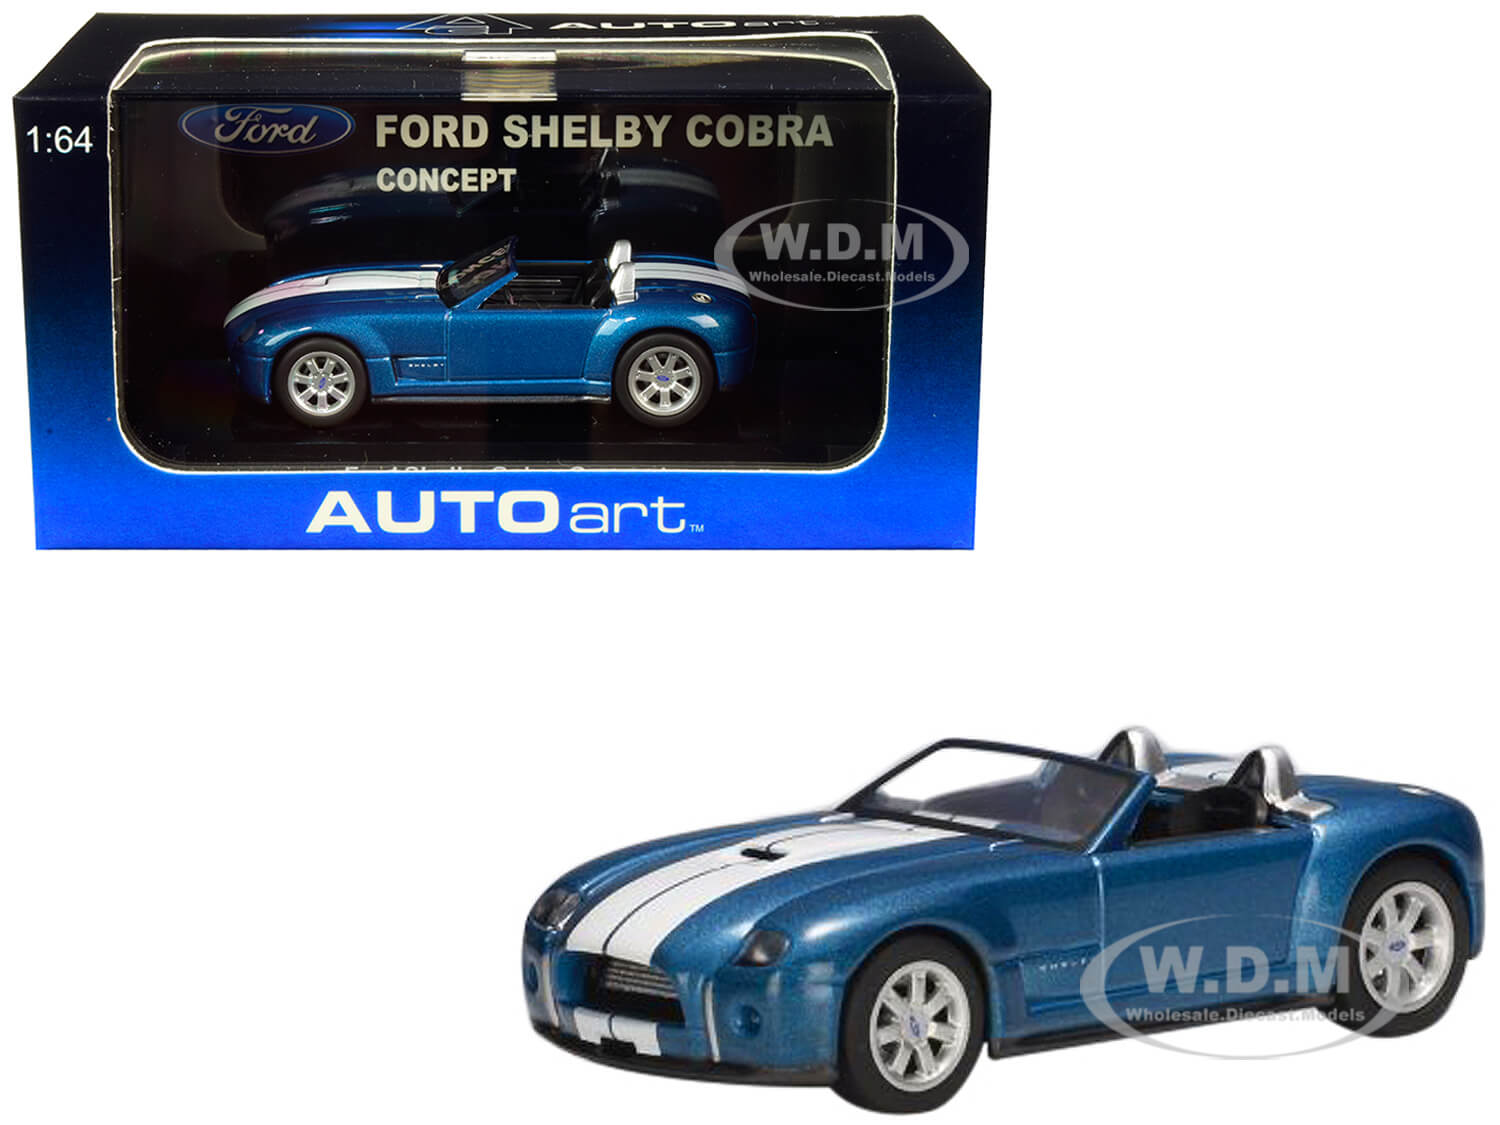 2004 Ford Shelby Cobra Concept Guardsman Blue Metallic with Performance White Stripes 1/64 Diecast Model Car by Autoart